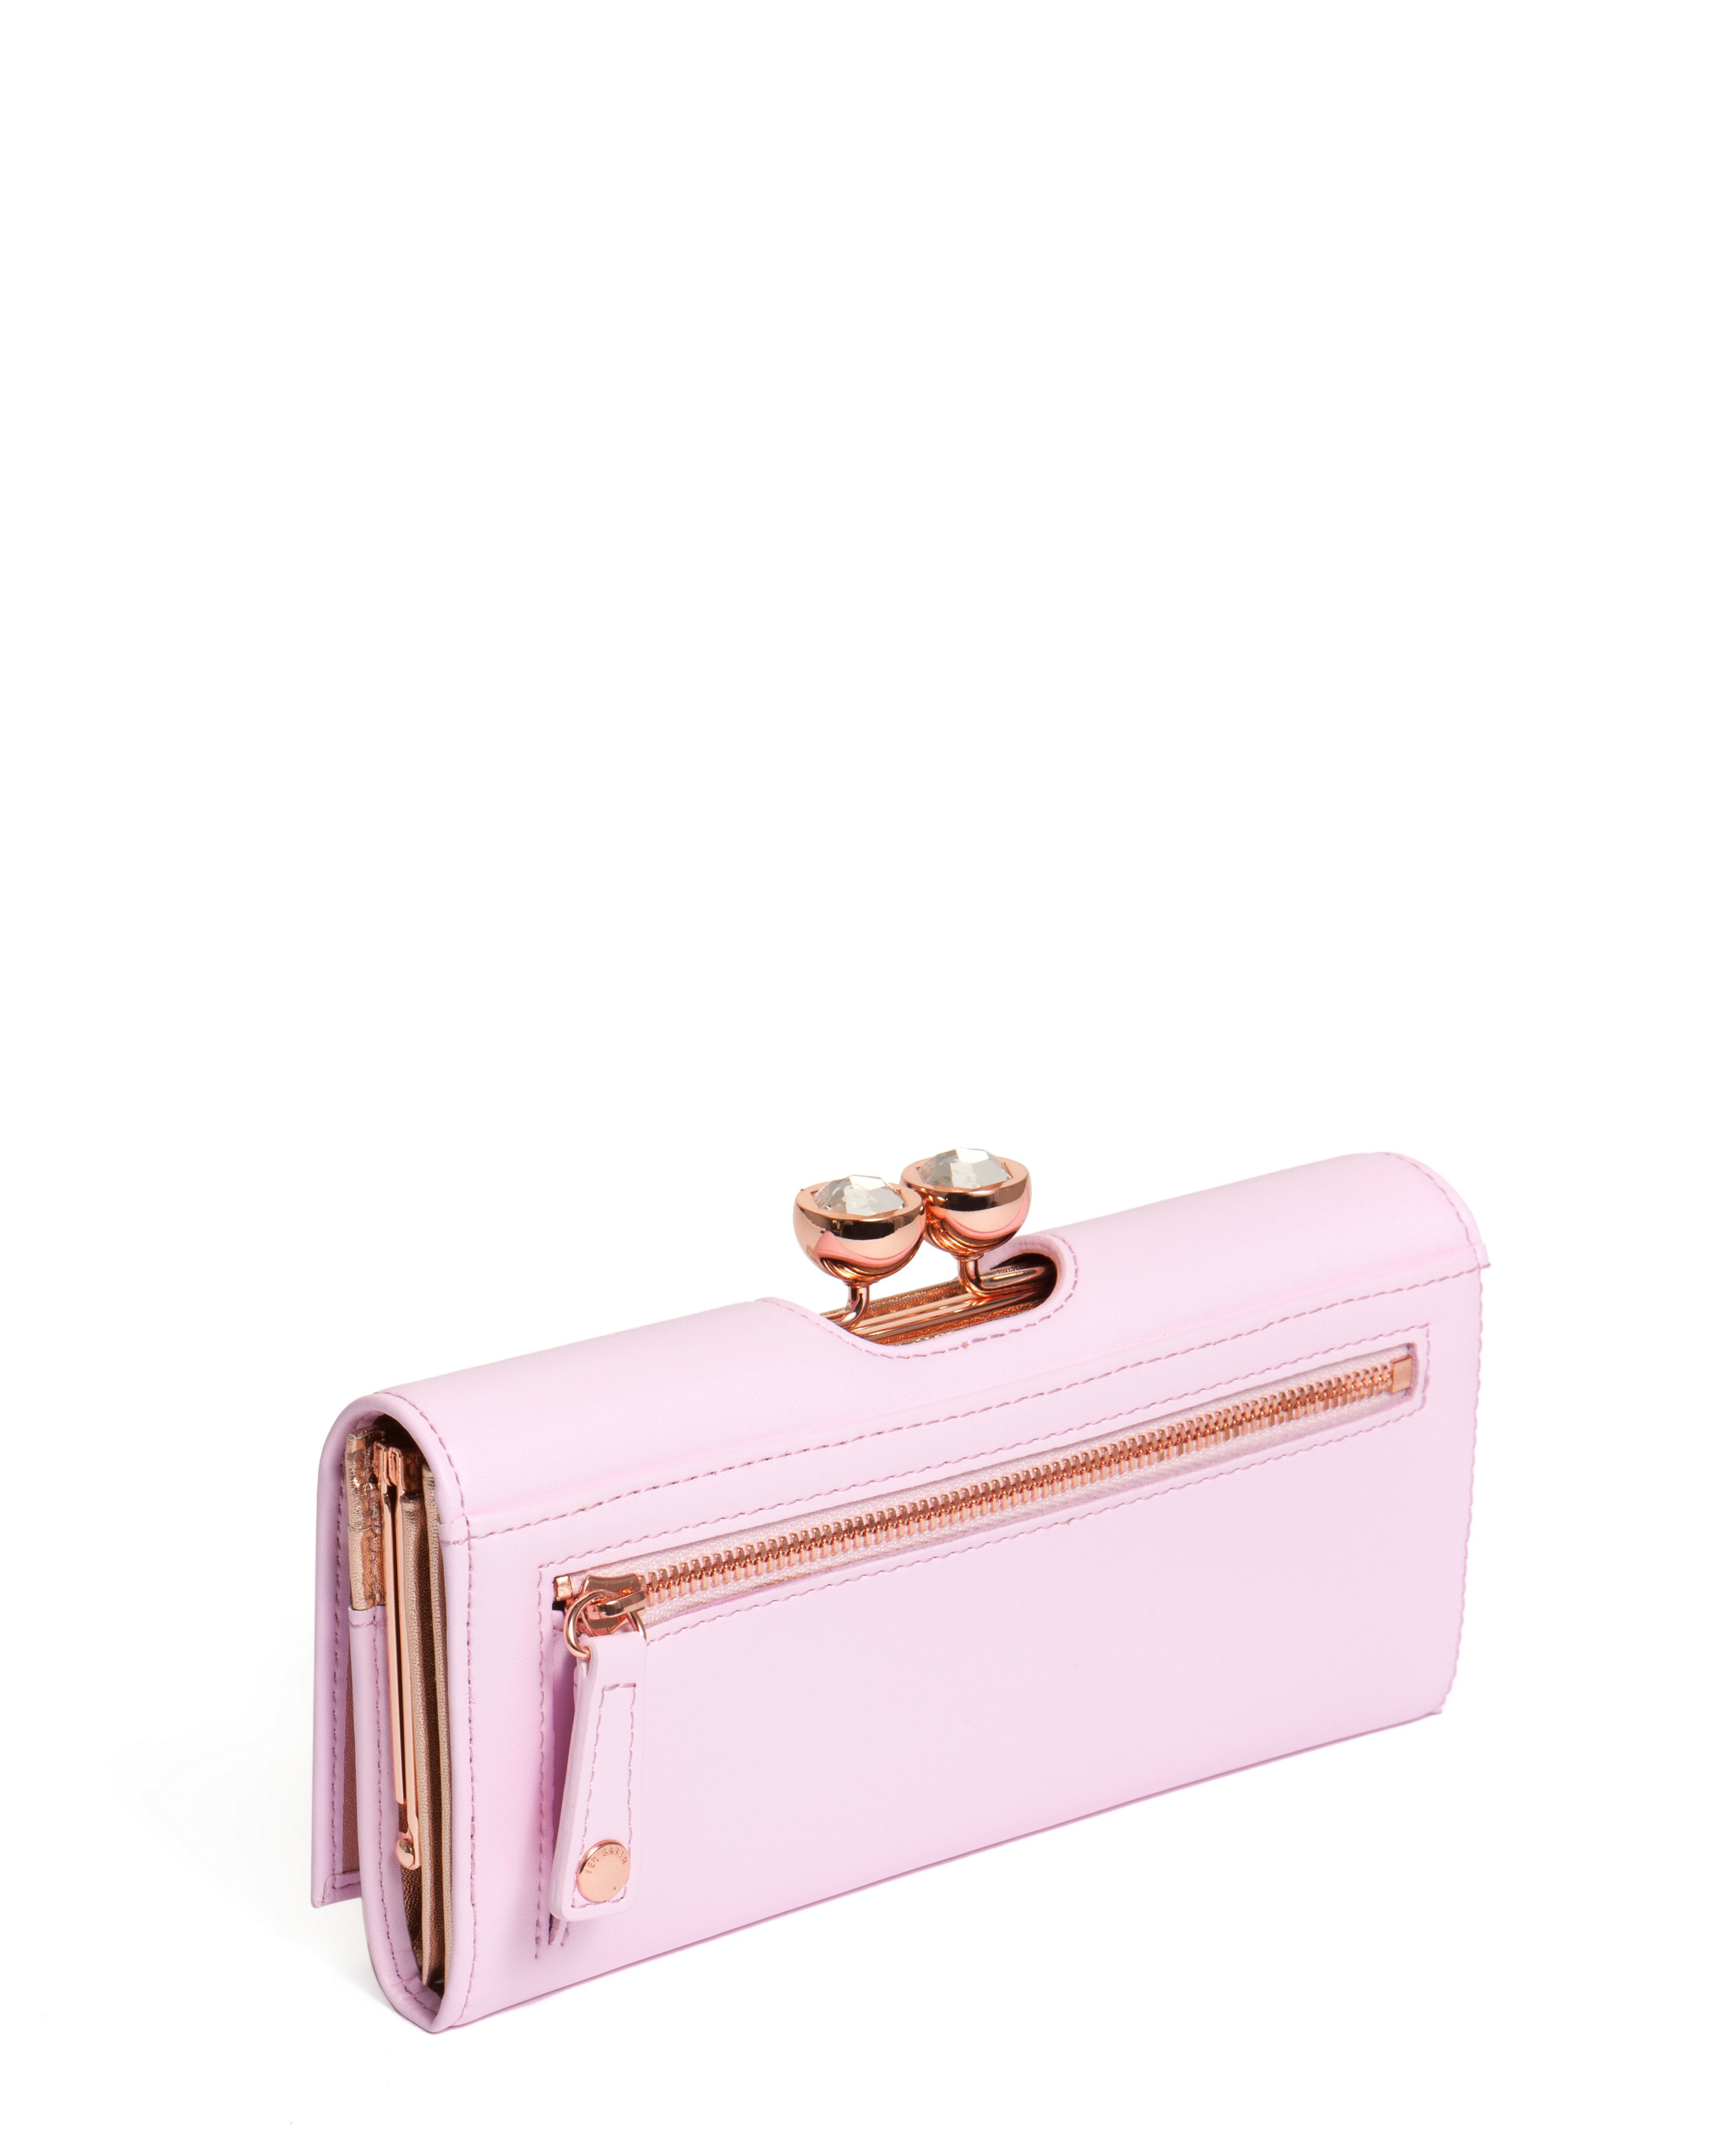 9a6fbf2425e4 Ted Baker Crystal Bobble Matinee Purse Best Image Ccdbb. Gallery. Lyst Ted  Baker Leather Crystal Bobble Matinee Purse In Pink